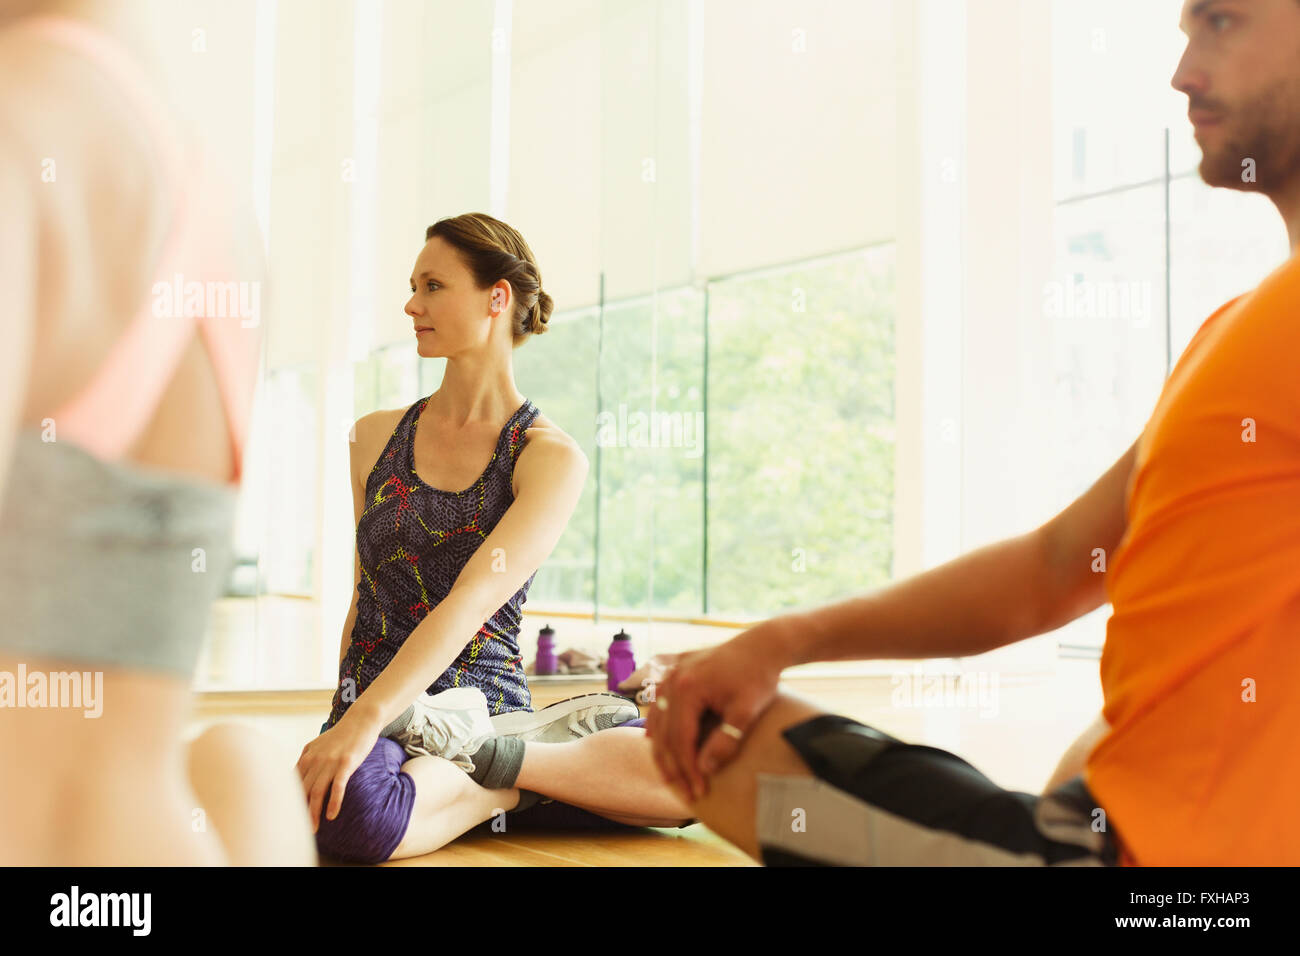 Fitness instructor leading class in twisting stretch - Stock Image